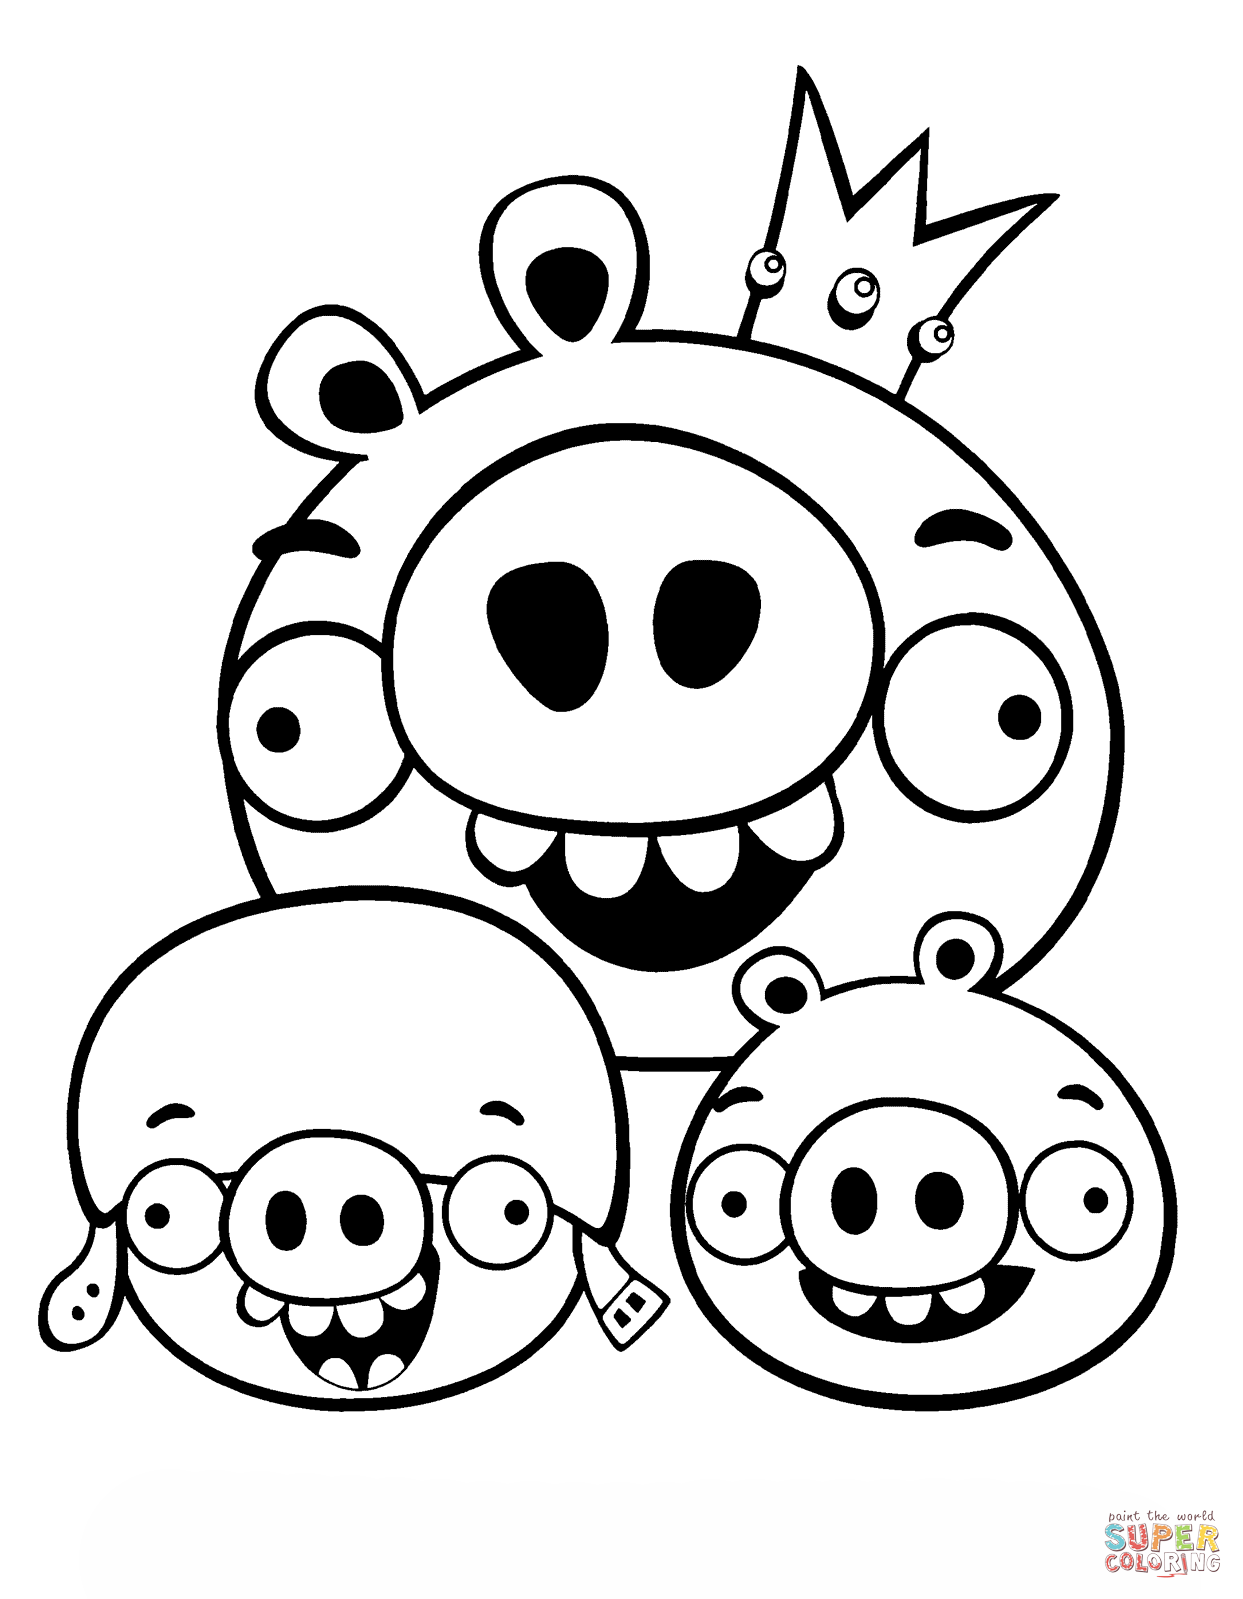 Minion halloween coloring pages printable - King Pig And Minion Coloring Page Free Printable Coloring Pages